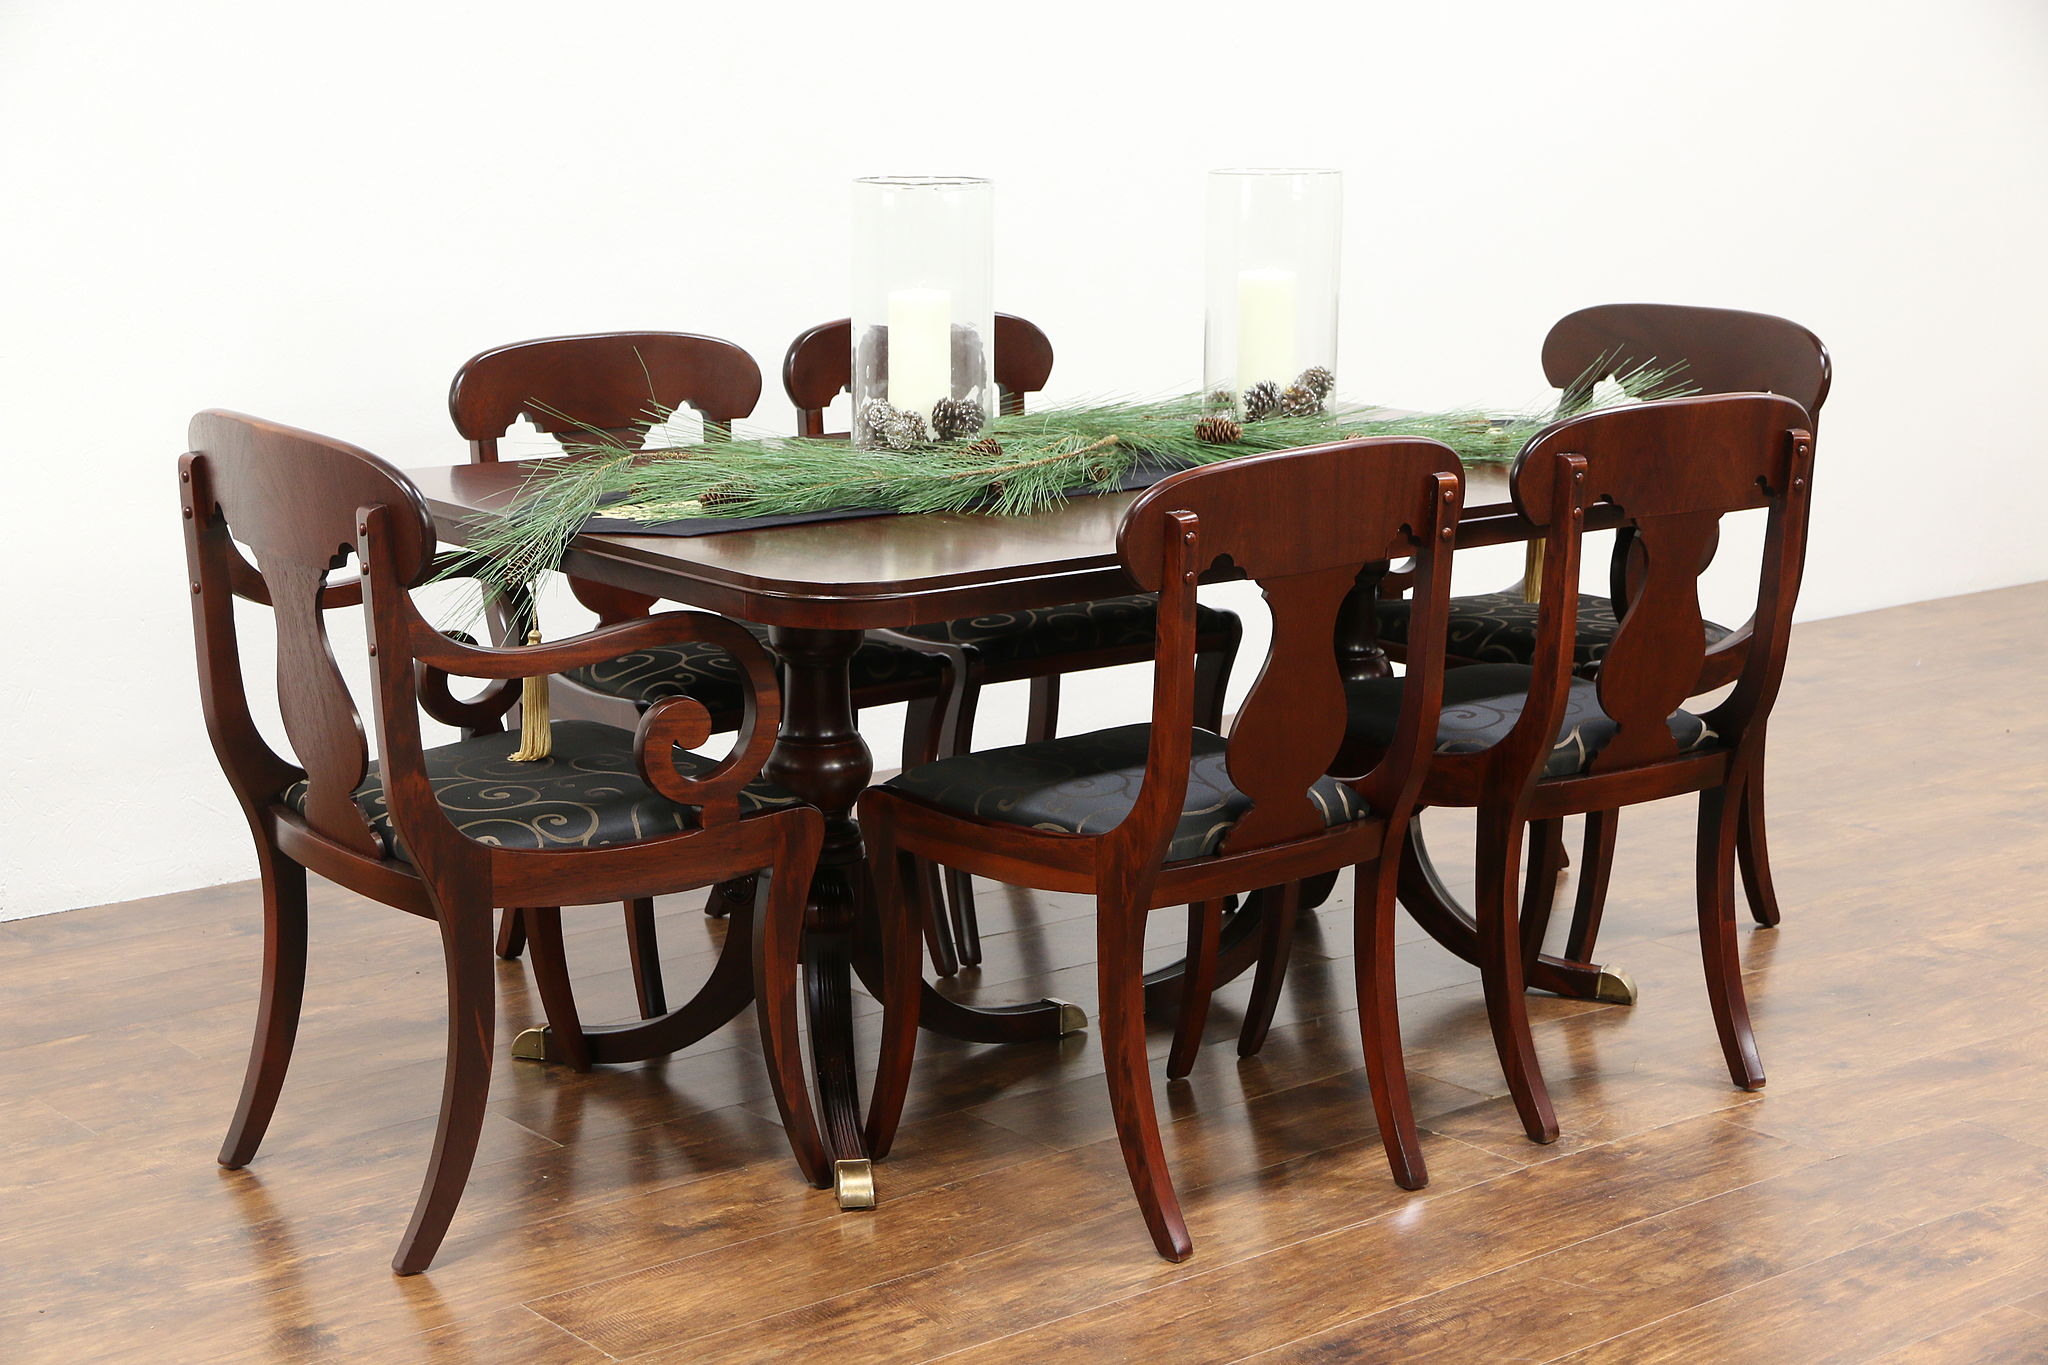 Sold Mahogany Traditional Vintage Dining Set Table 3 Leaves 6 Chairs Drexel Harp Gallery